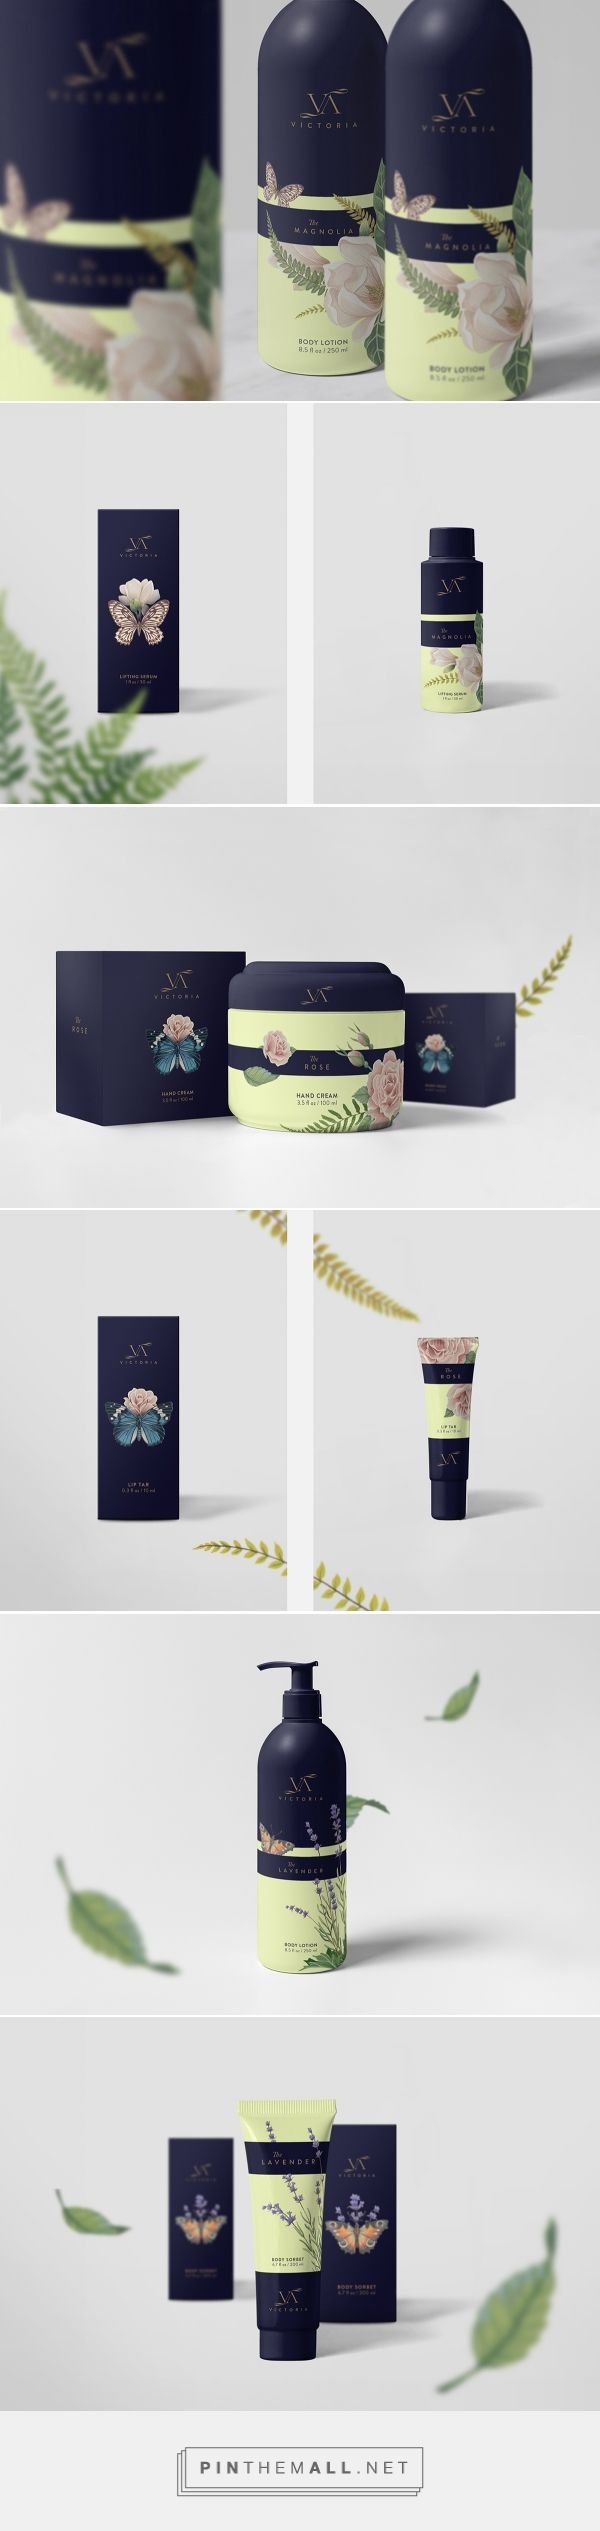 Victoria Cosmetics on Behance | Fivestar Branding – Design and Branding Agency Inspiration Gallery - Luxury Beauty - http://amzn.to/2hZFa13